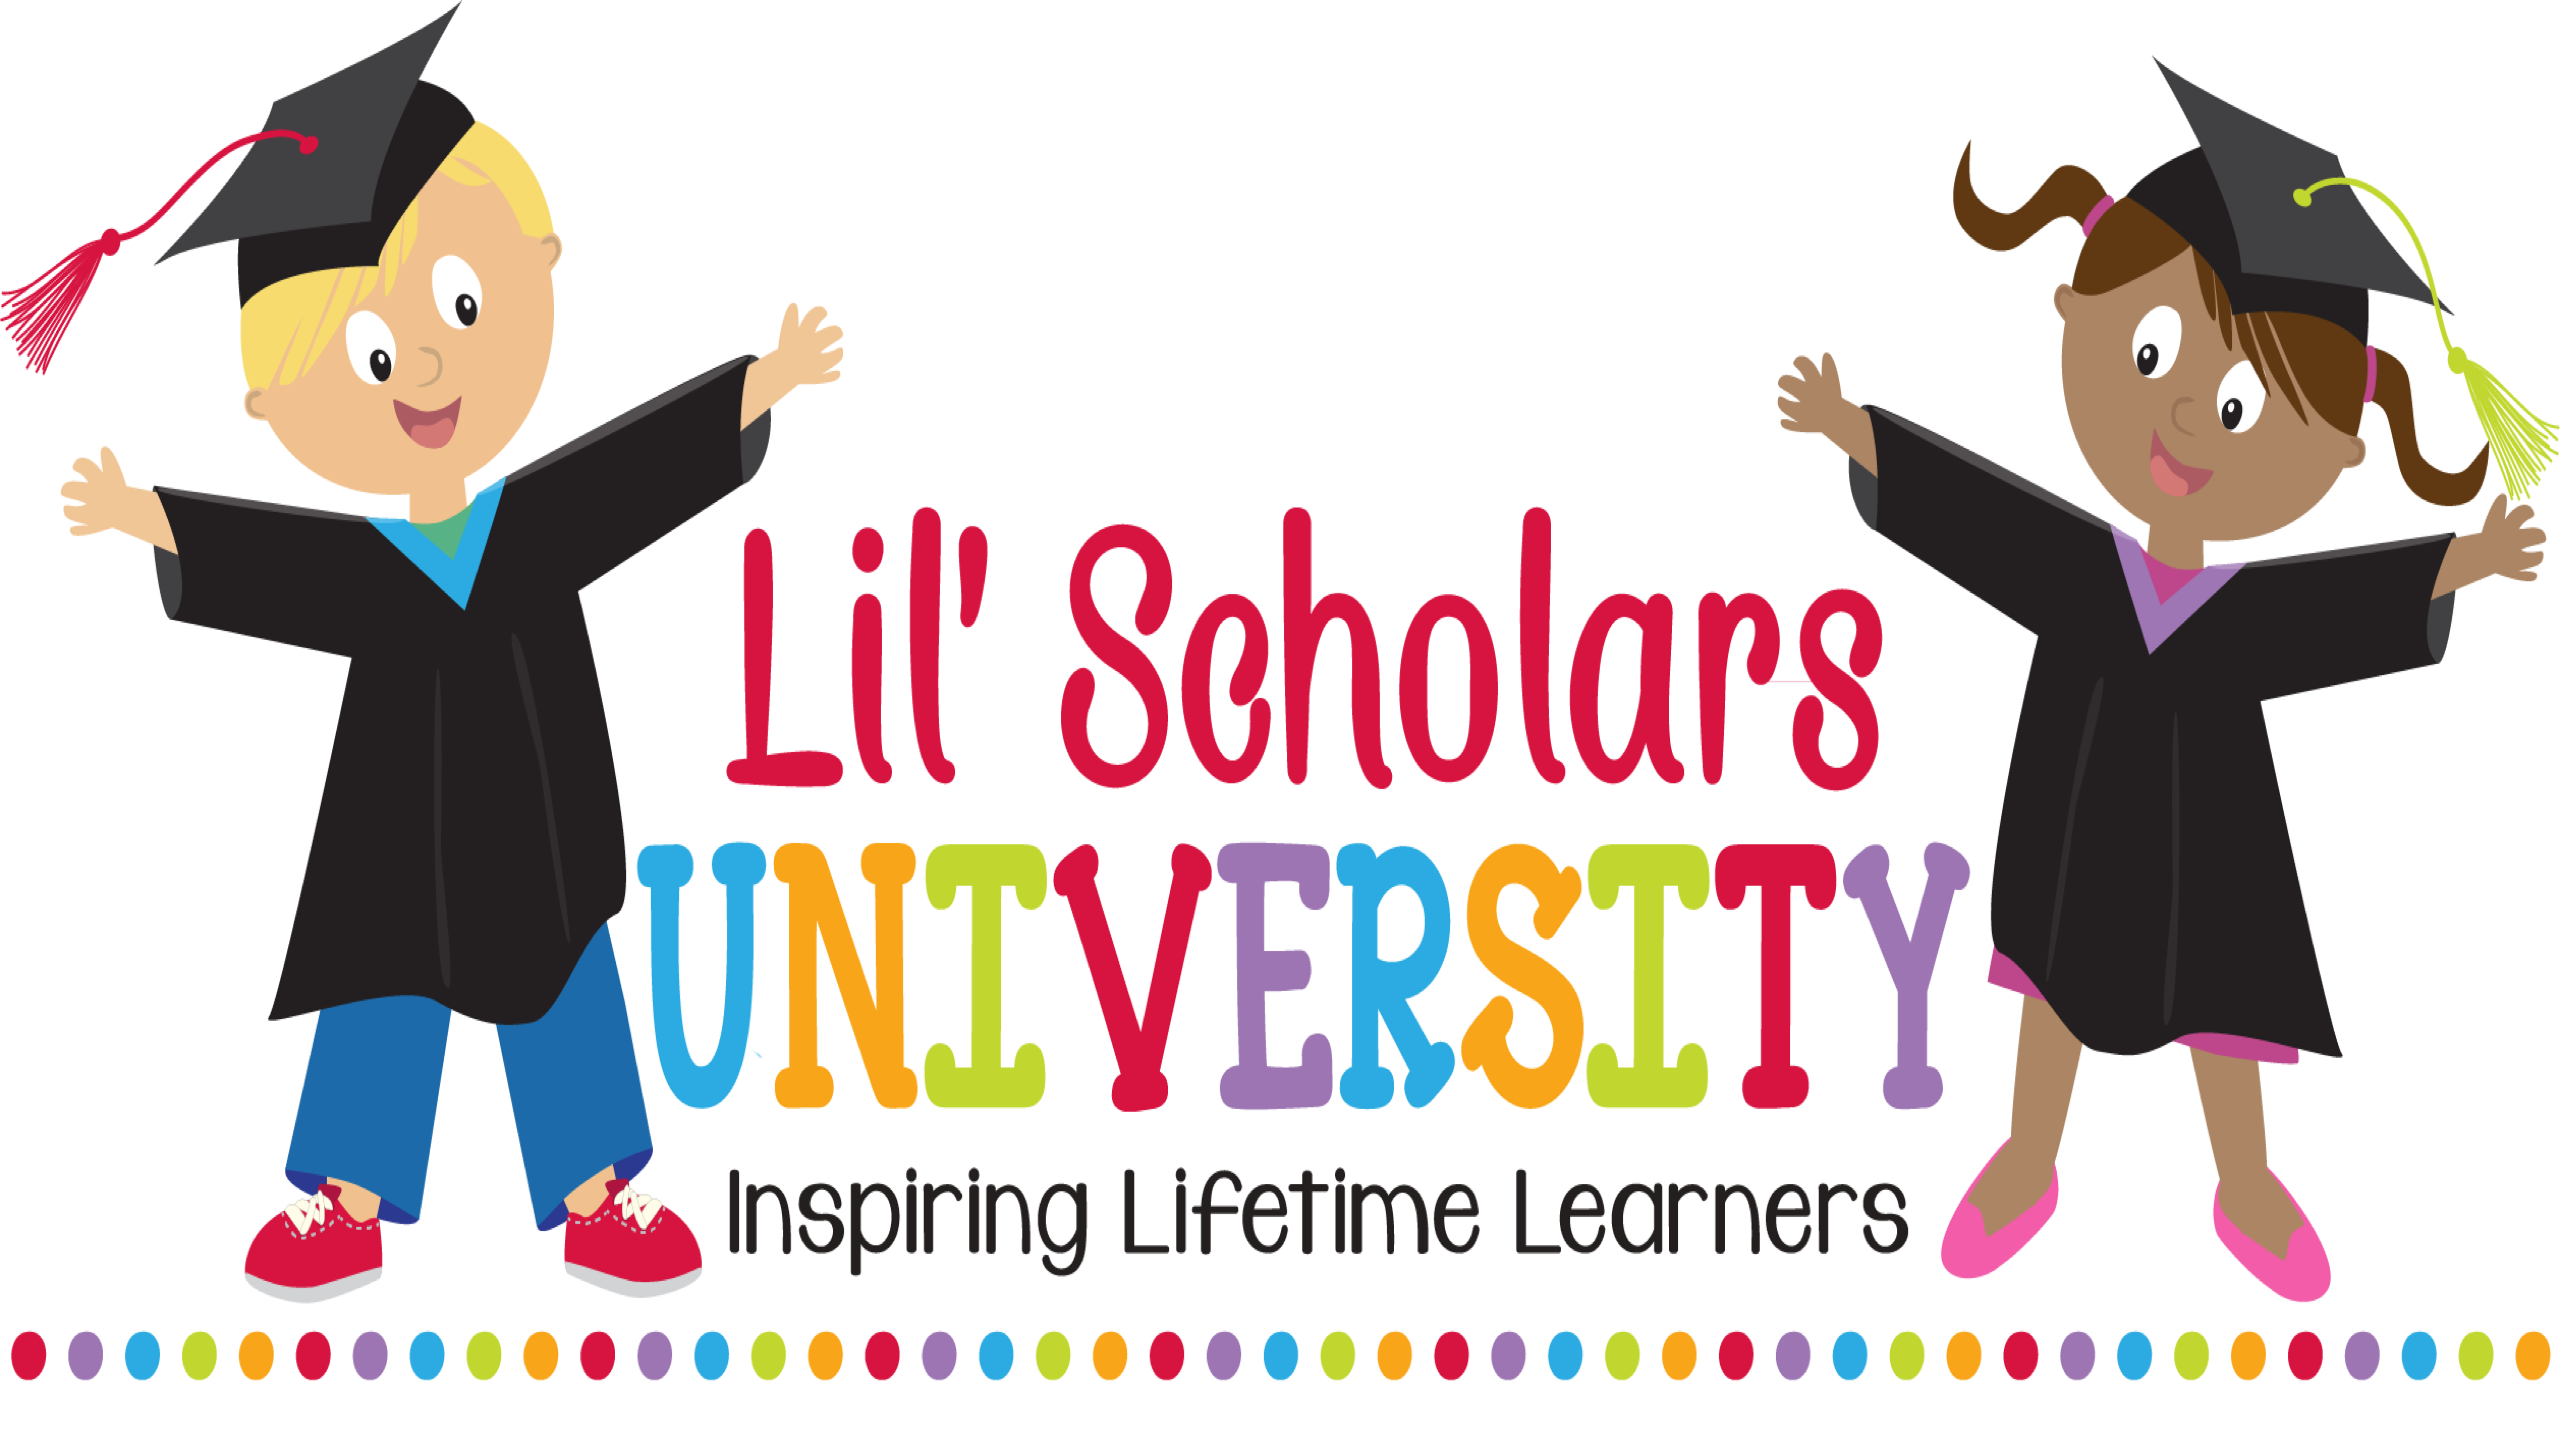 lil scholars university header 2560 x 1440